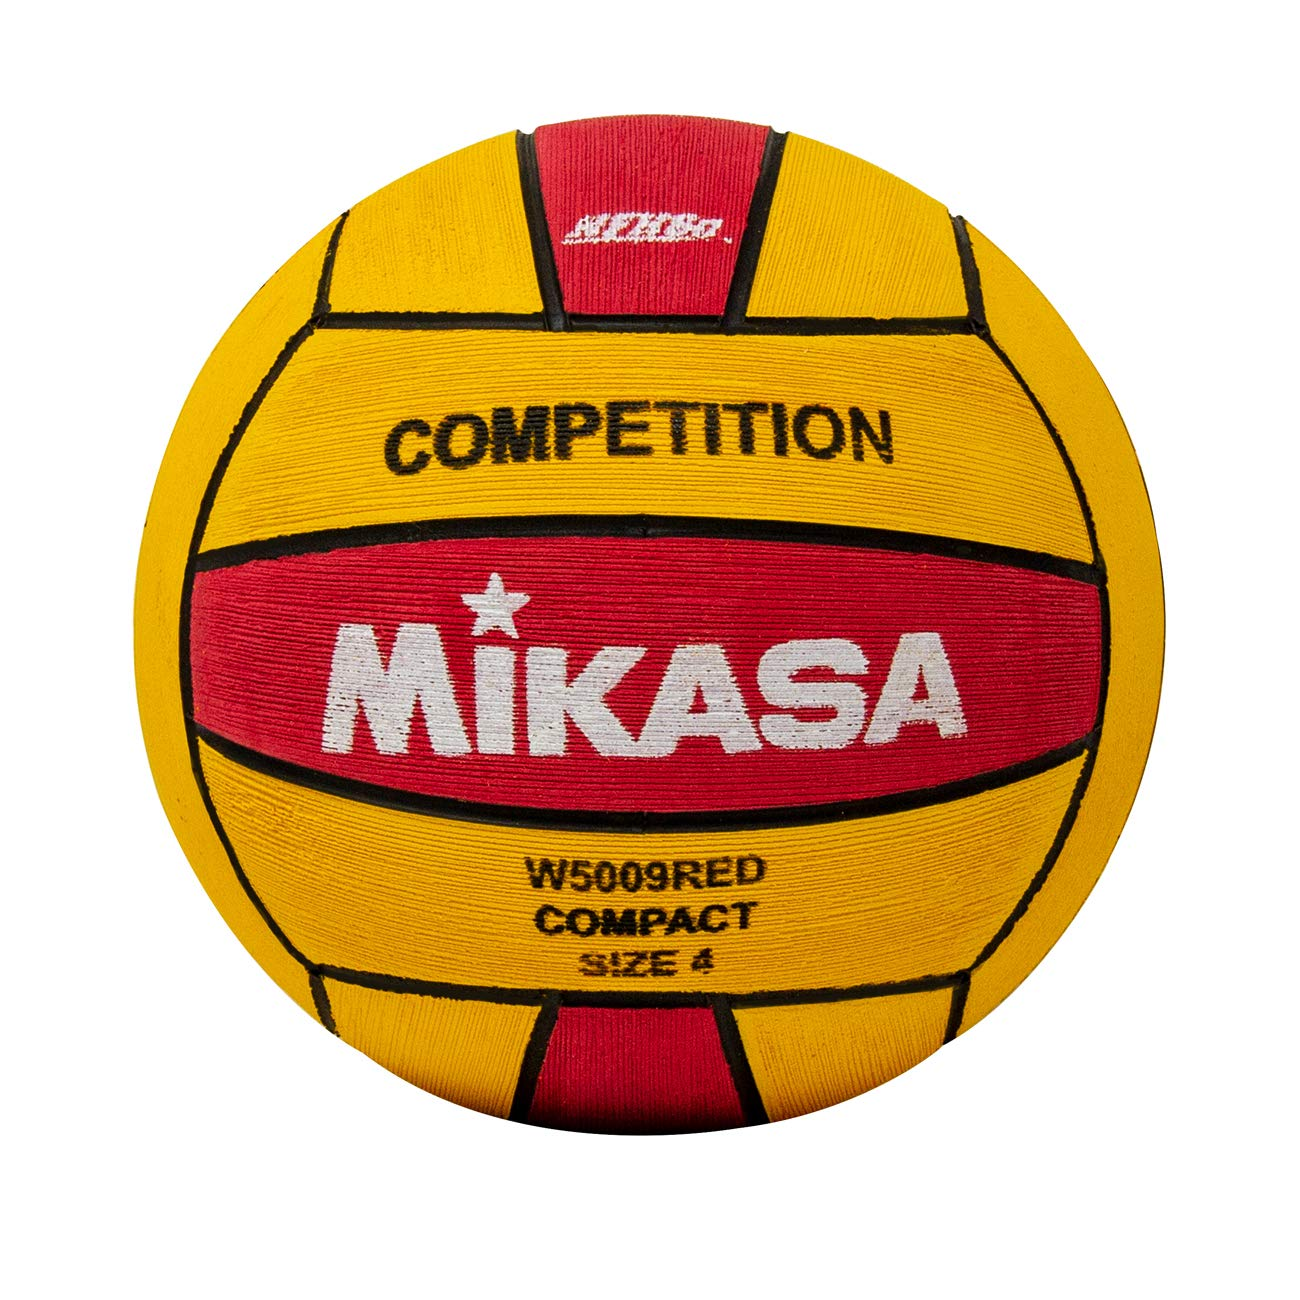 Mikasa w5009red Pelota de competición, Color Rojo/Amarillo, Talla ...